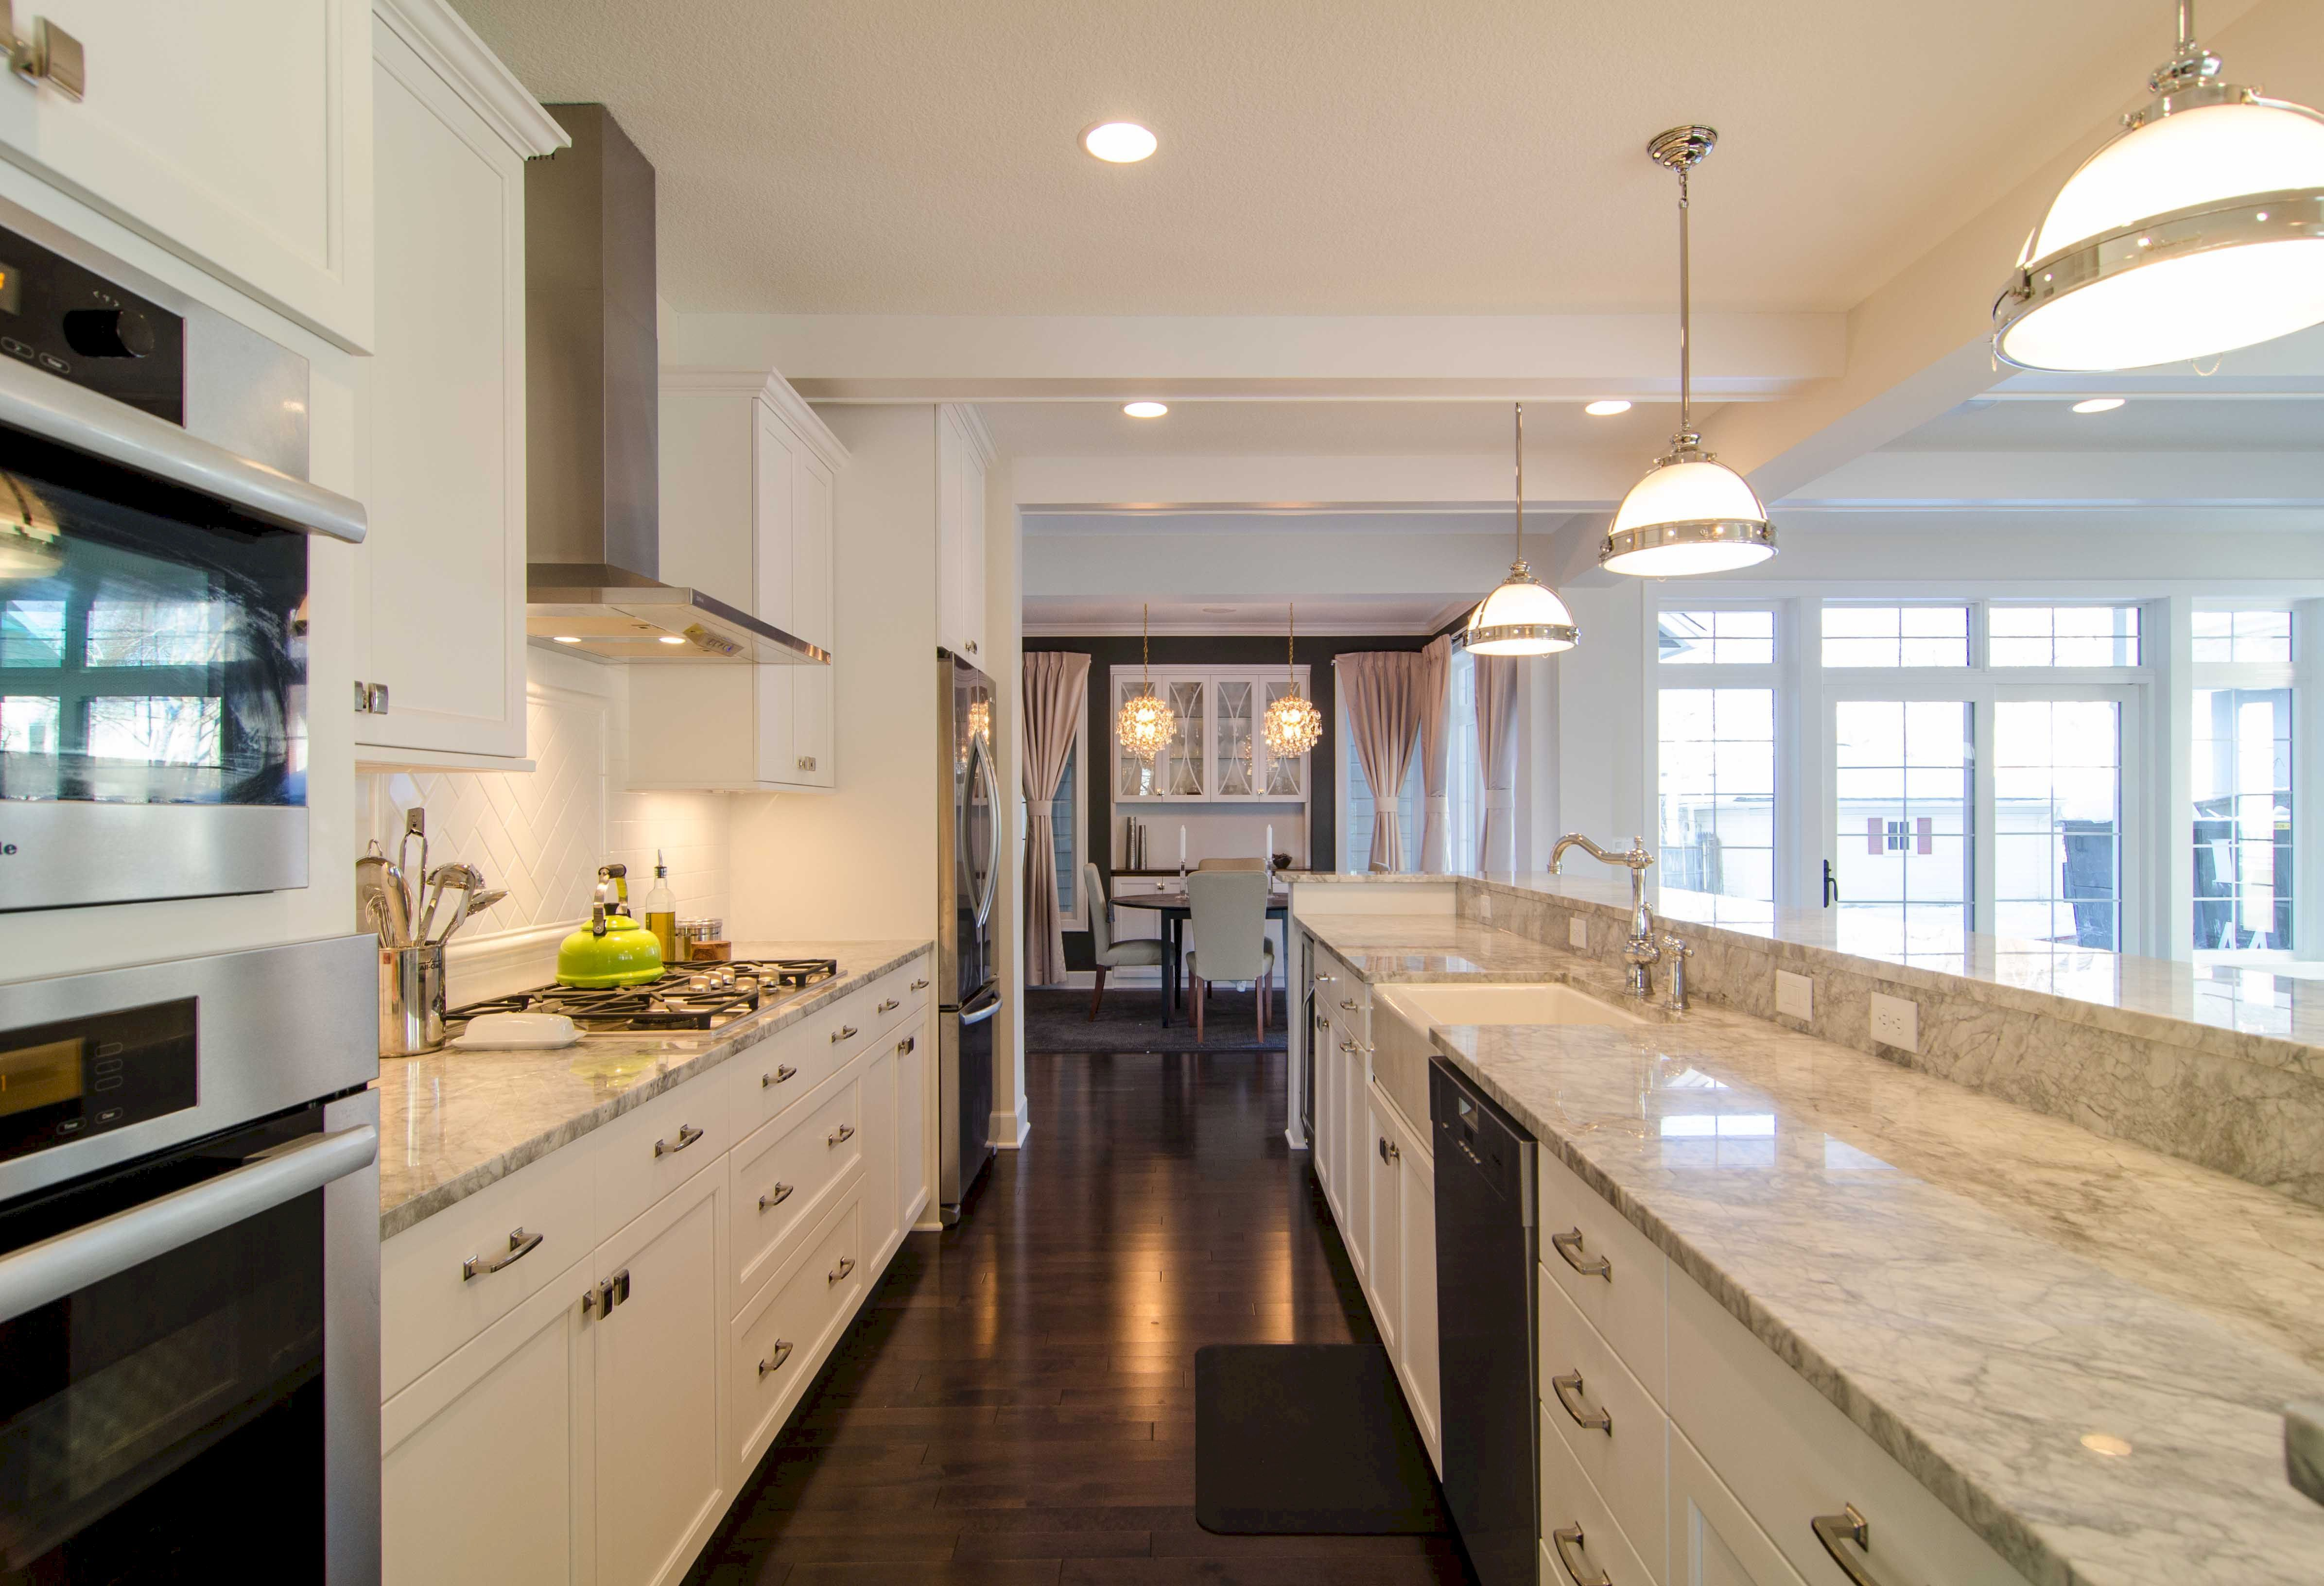 47 The Best Kitchen Design Ideas with Small Furnishings ...